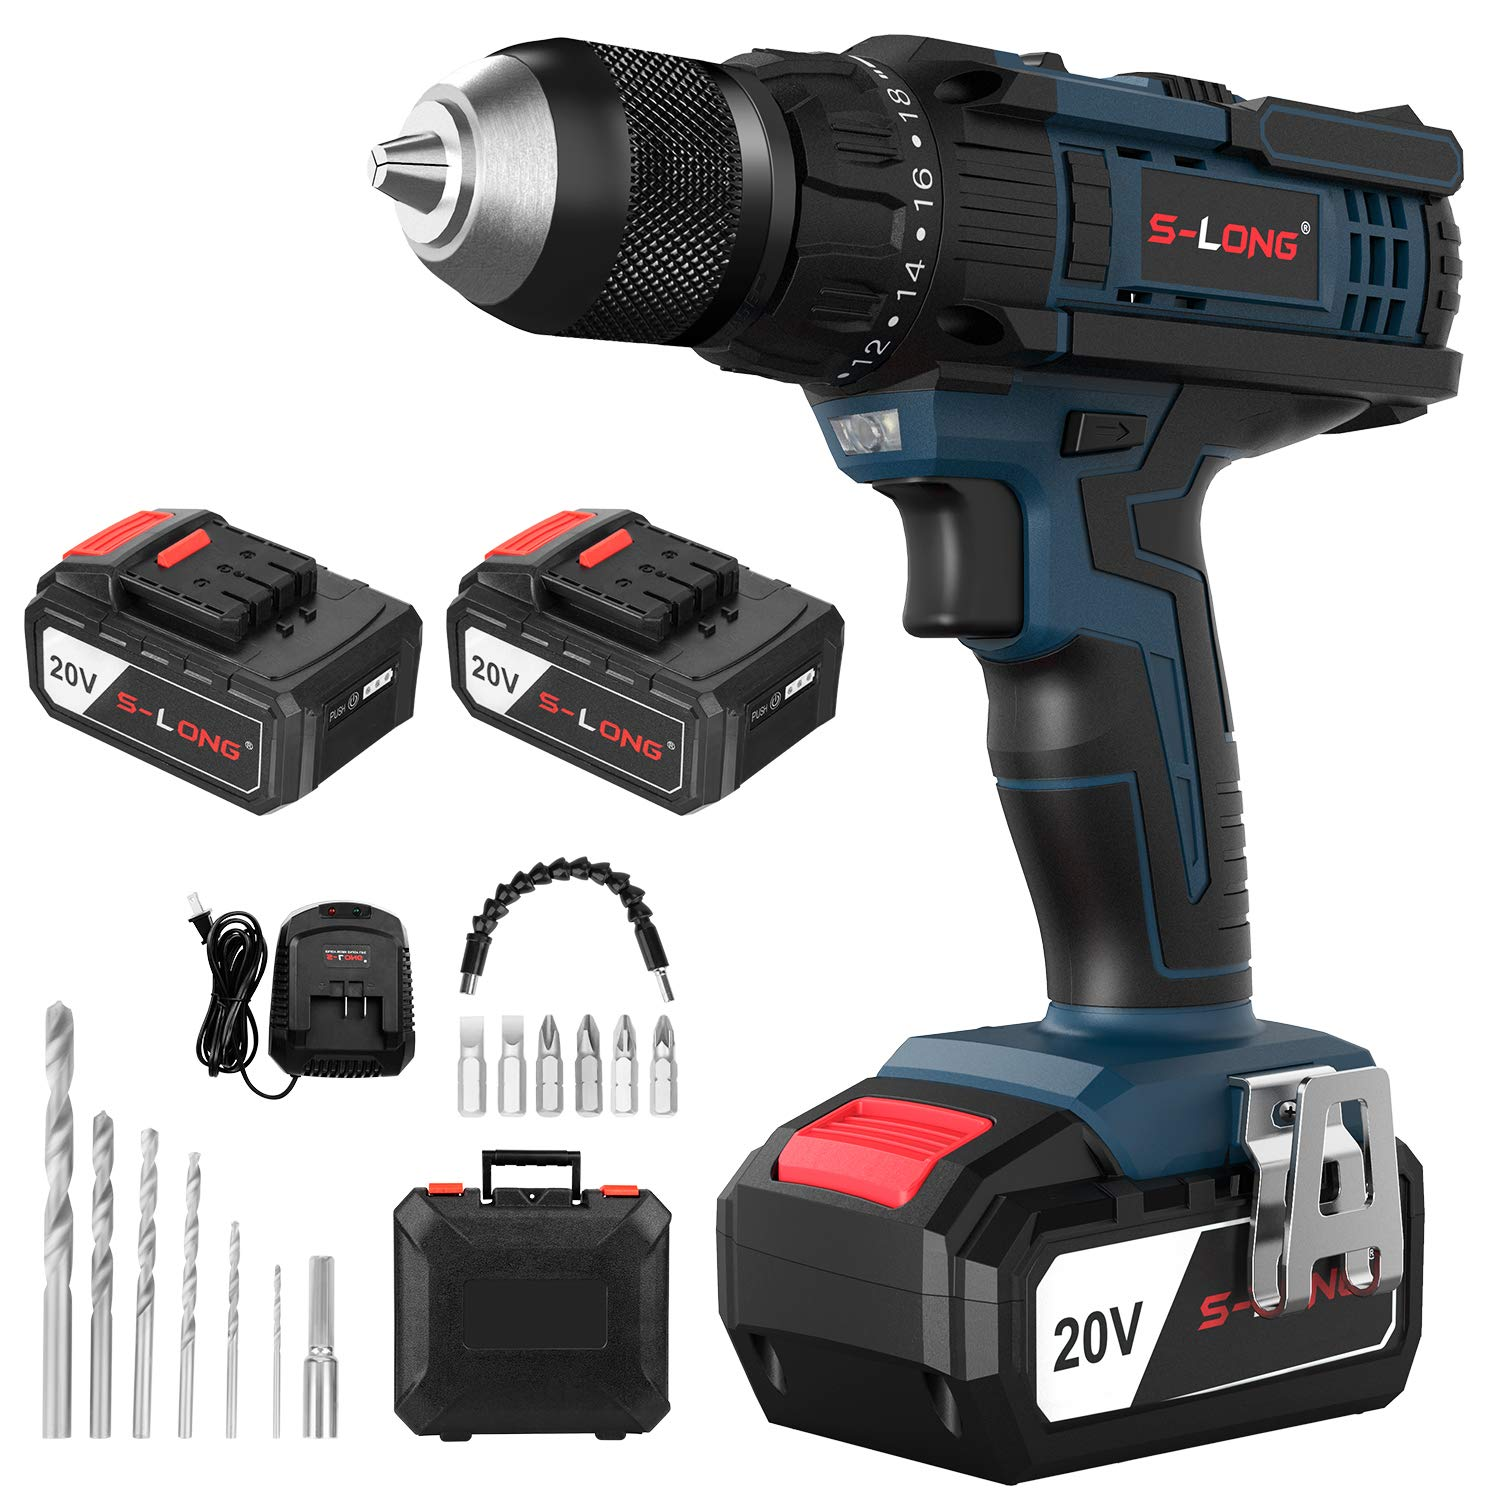 20V Cordless Drill with 2 Batteries and Charger,1/2 Inch Cordless Drill Set,Variable Speed Drill Driver Cordless by S-LONG by S-LONG (Image #8)